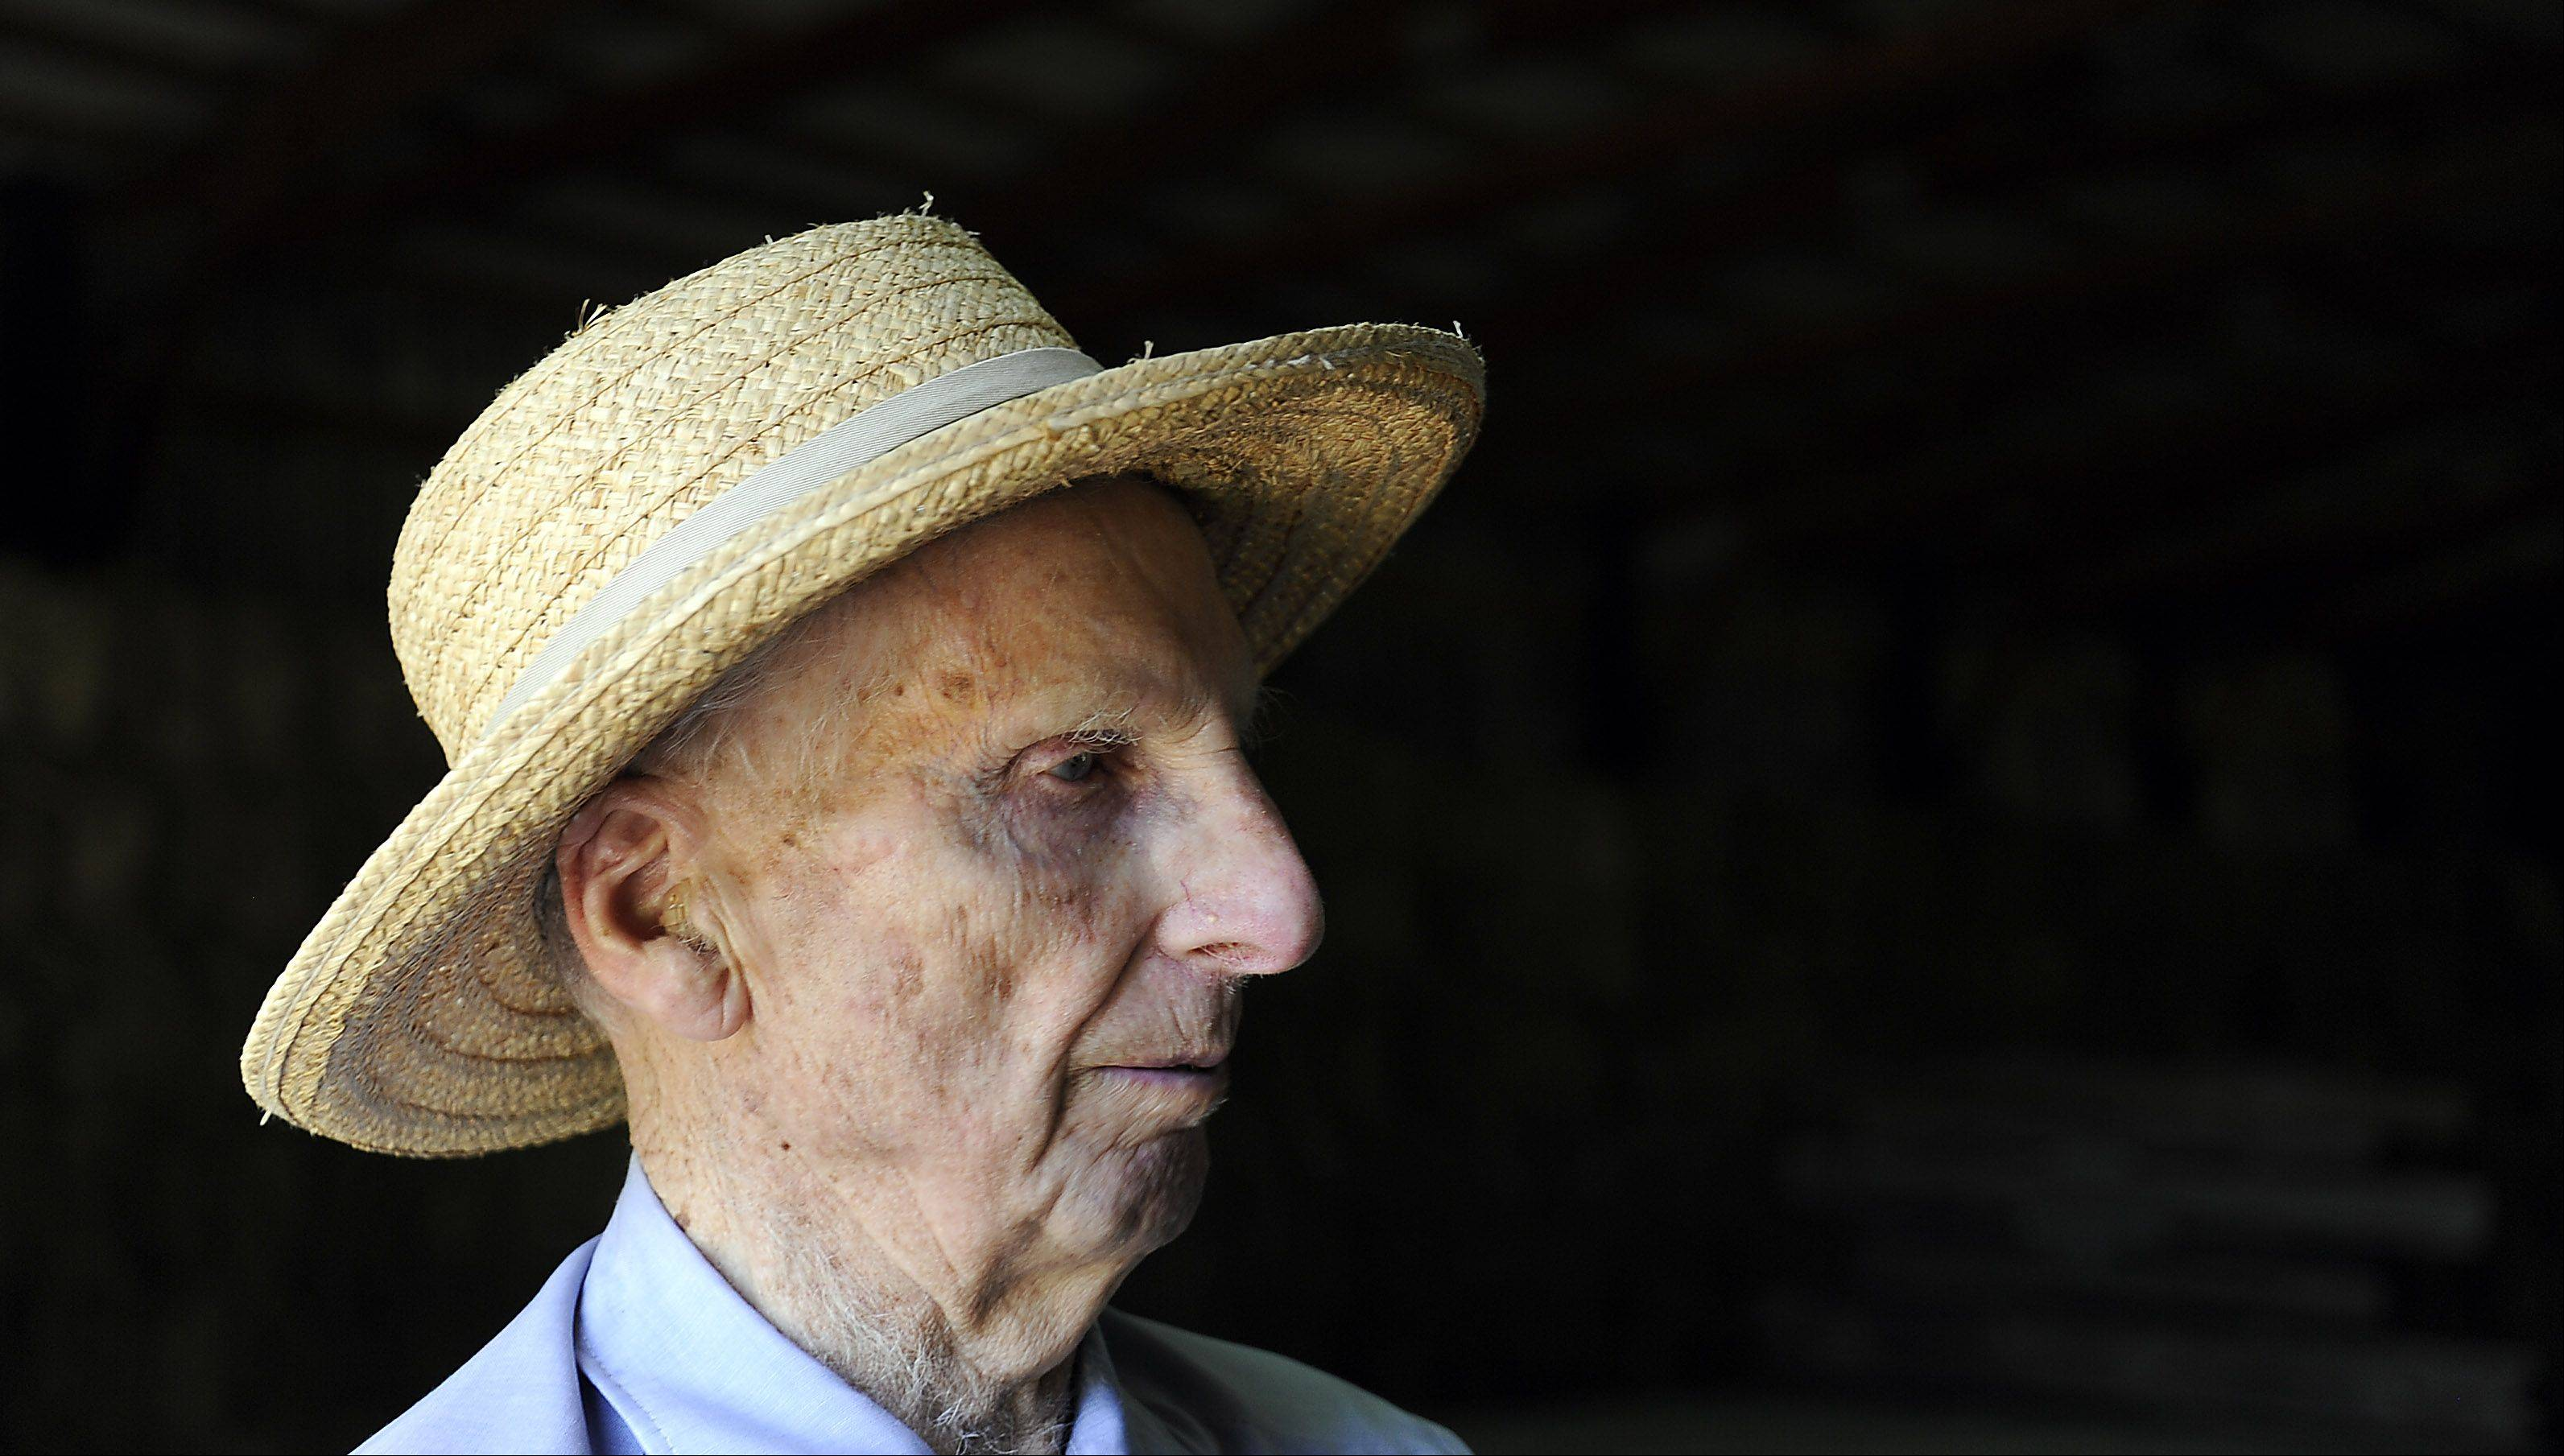 Harold Bergman, 97, of Hoffman Estates talks in his barn about being the oldest farmer in Cook County.